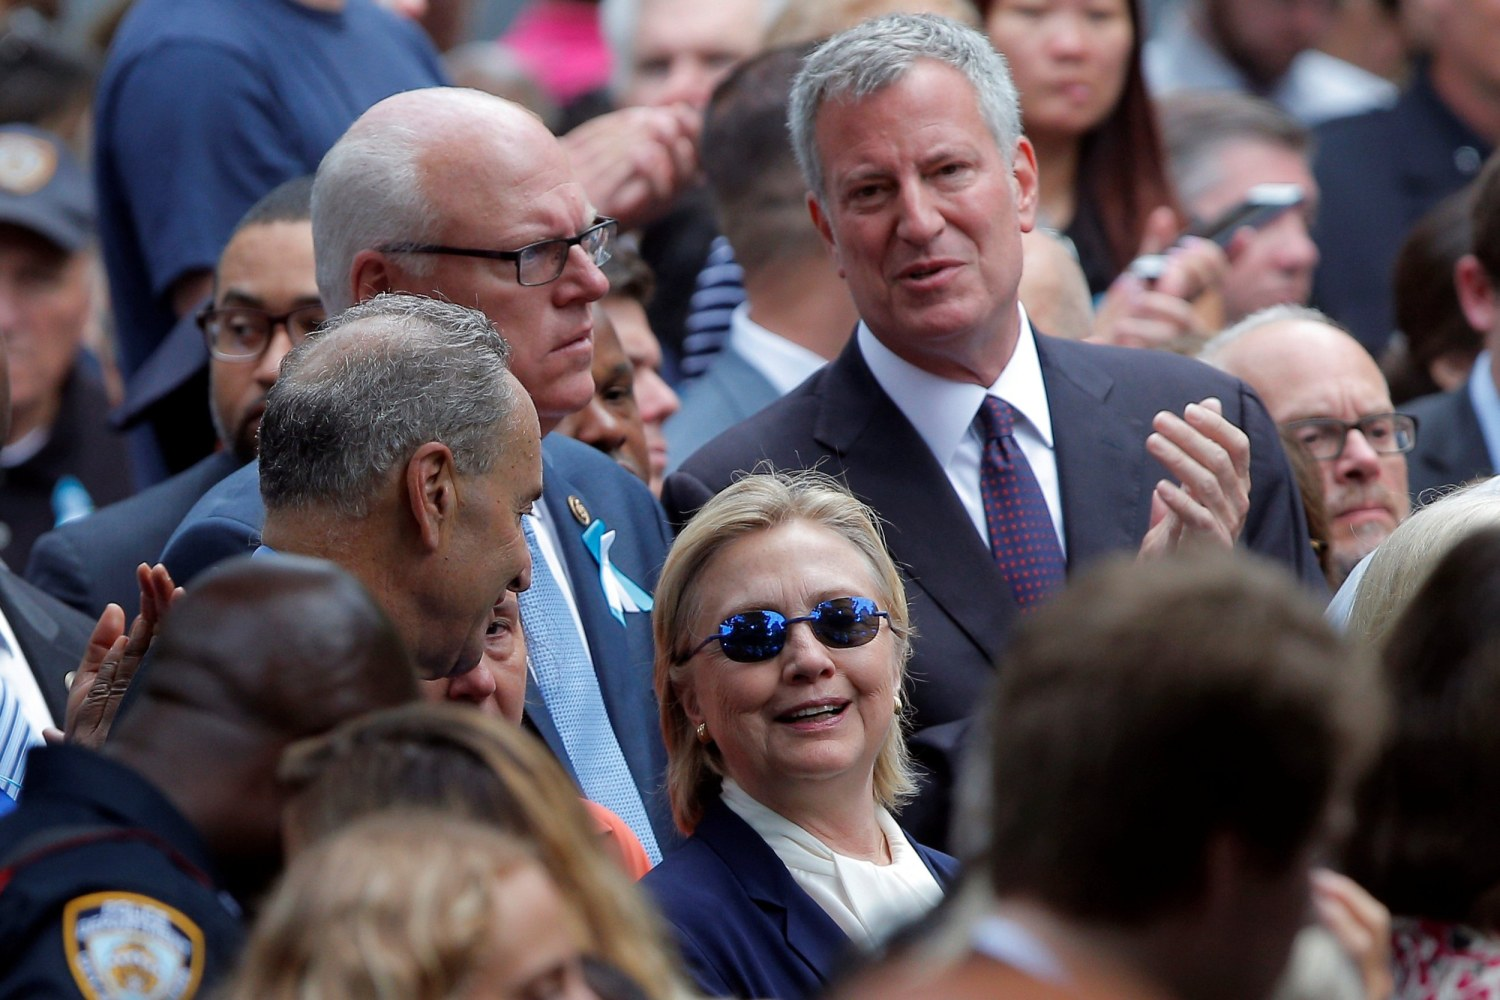 Hillary Clinton leaves 9/11 commemoration early; campaign says she felt 'overheated'